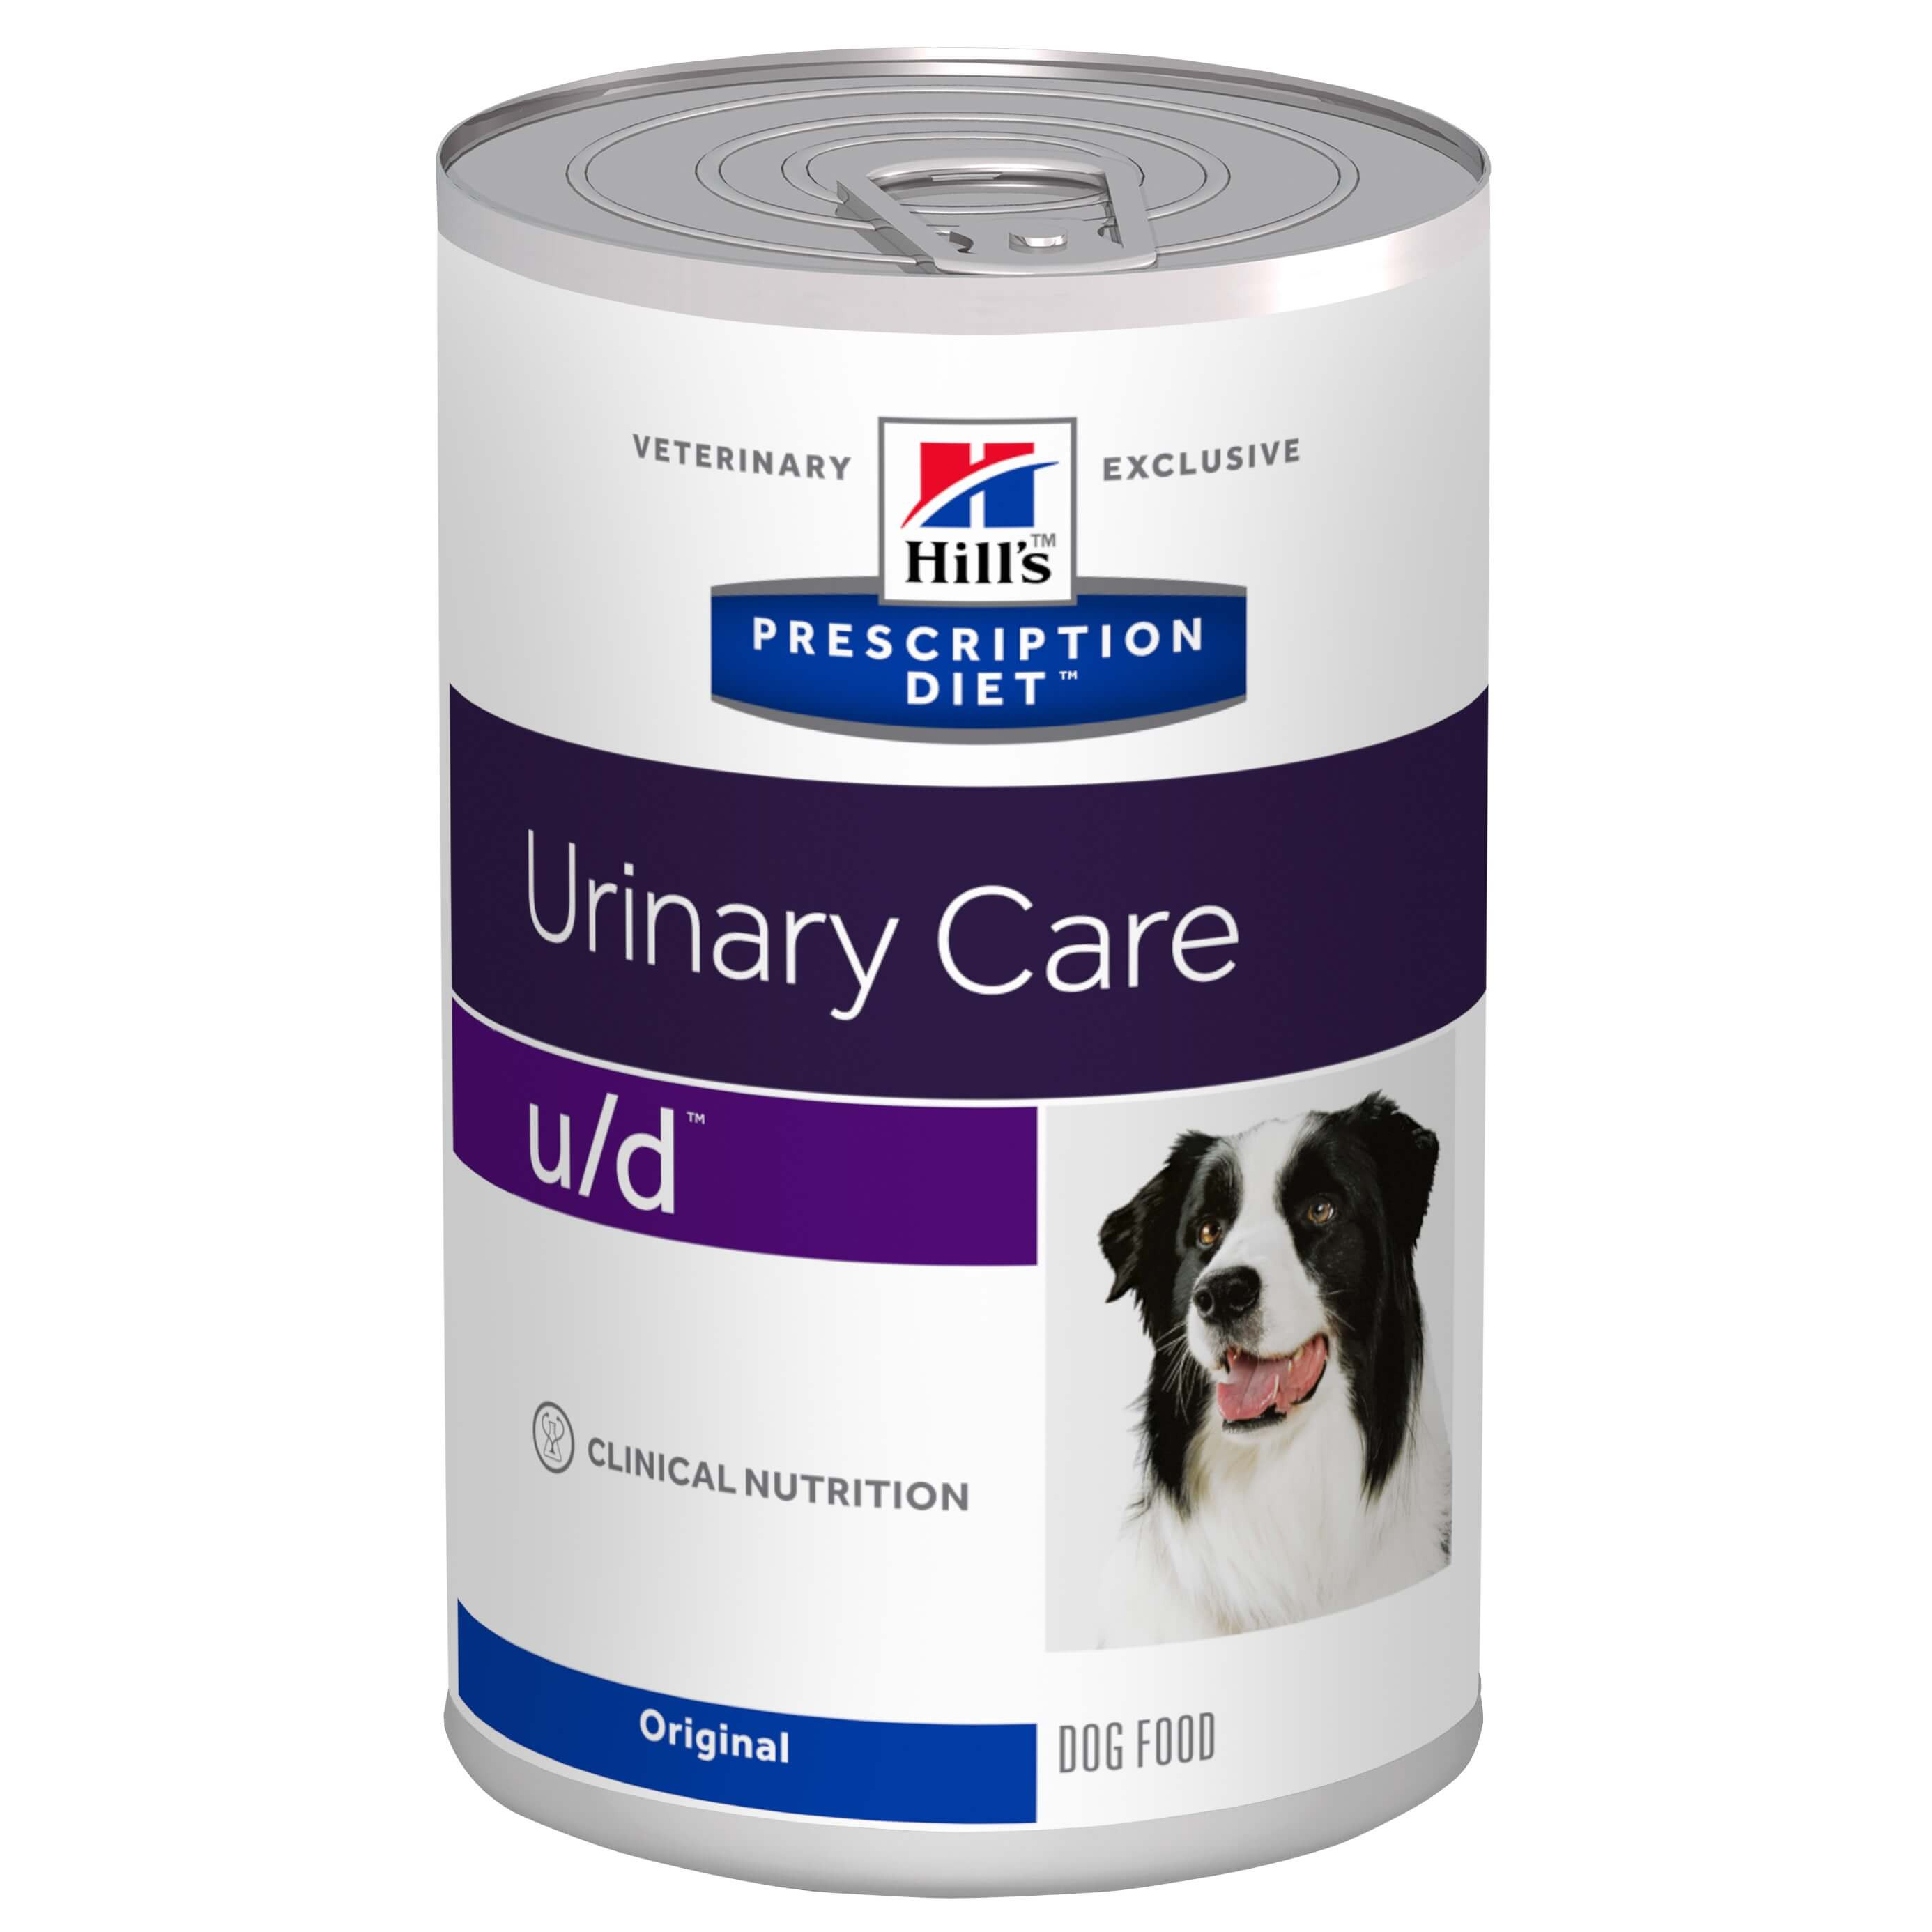 Hill's Prescription U/D Urinary Care dåse hundefoder 370g